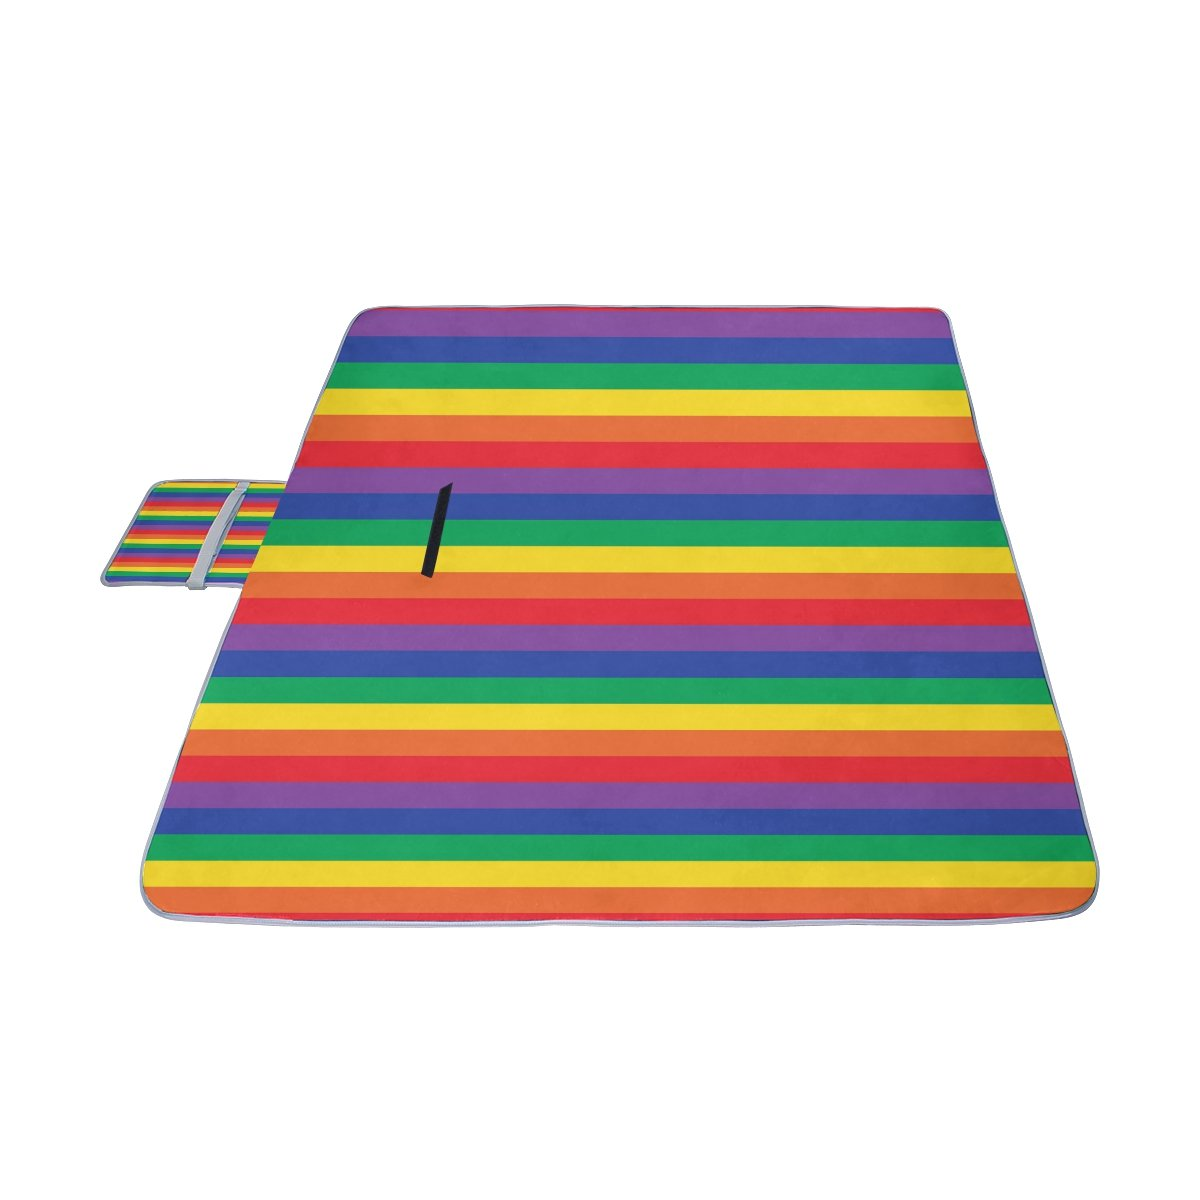 Naanle Rainbow Stripe Plaid Picnic Blanket Outdoor Picnic Blanket Tote Water-Resistant Backing Handy Camping Beach Hiking Mat